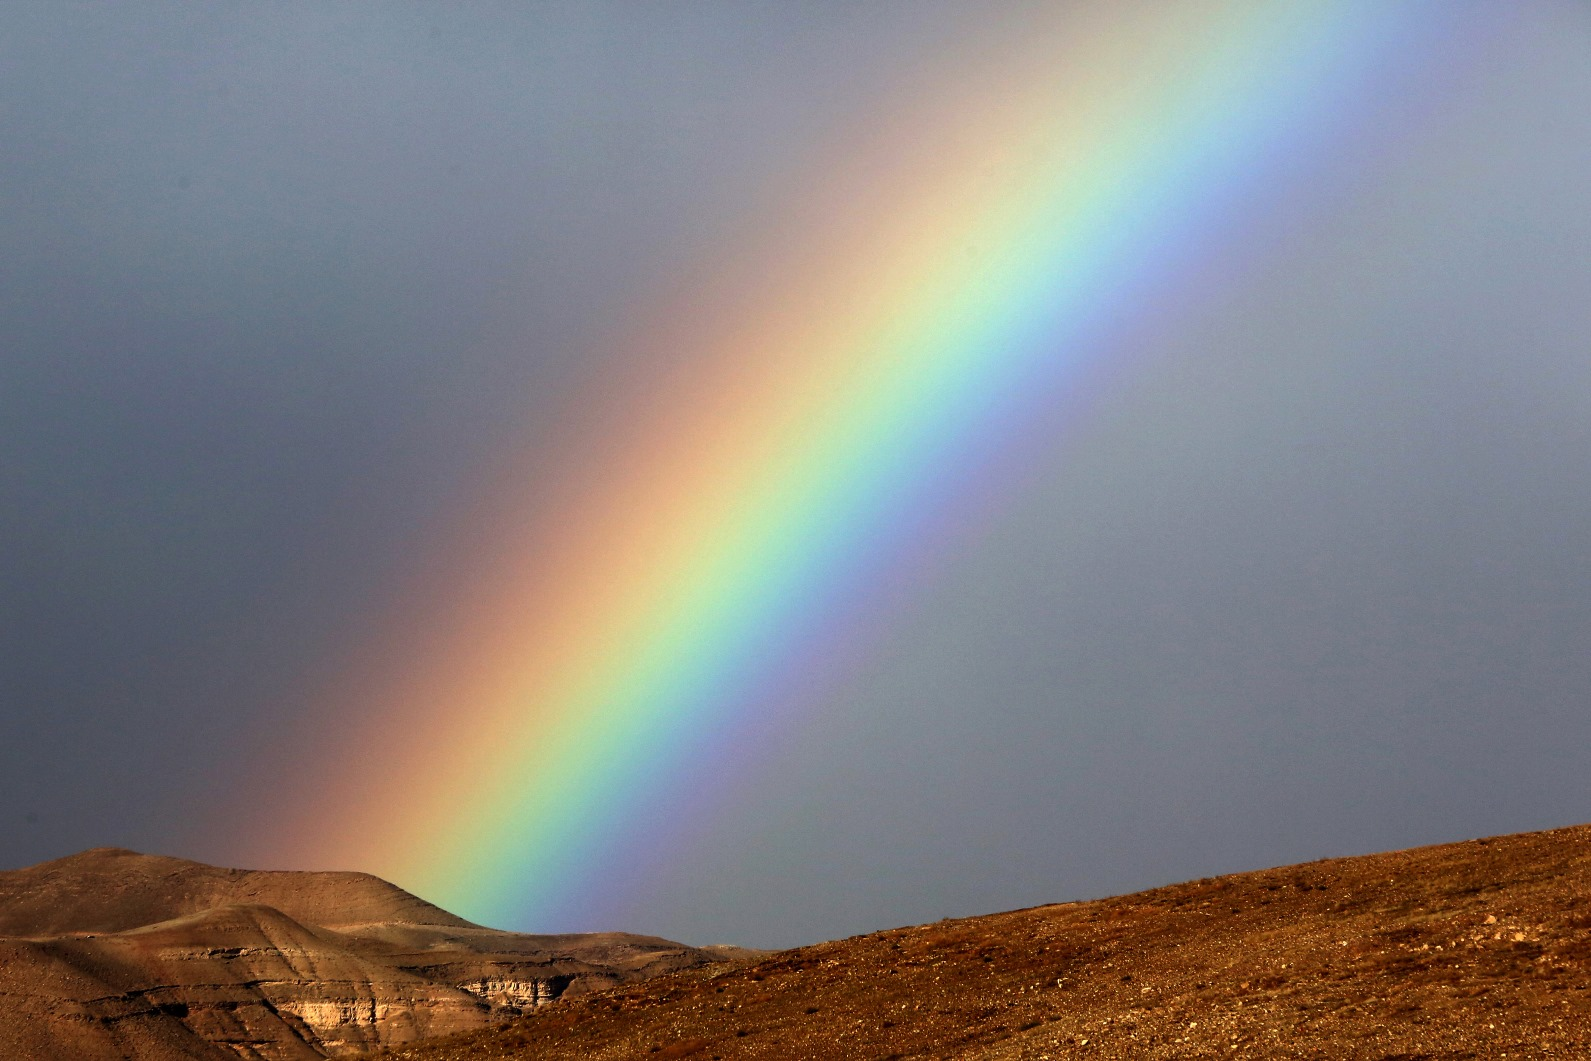 A rainbow appears after heavy rain in the Judean Desert, January 1, 2016. Photo by Yossi Zamir/FLASH90